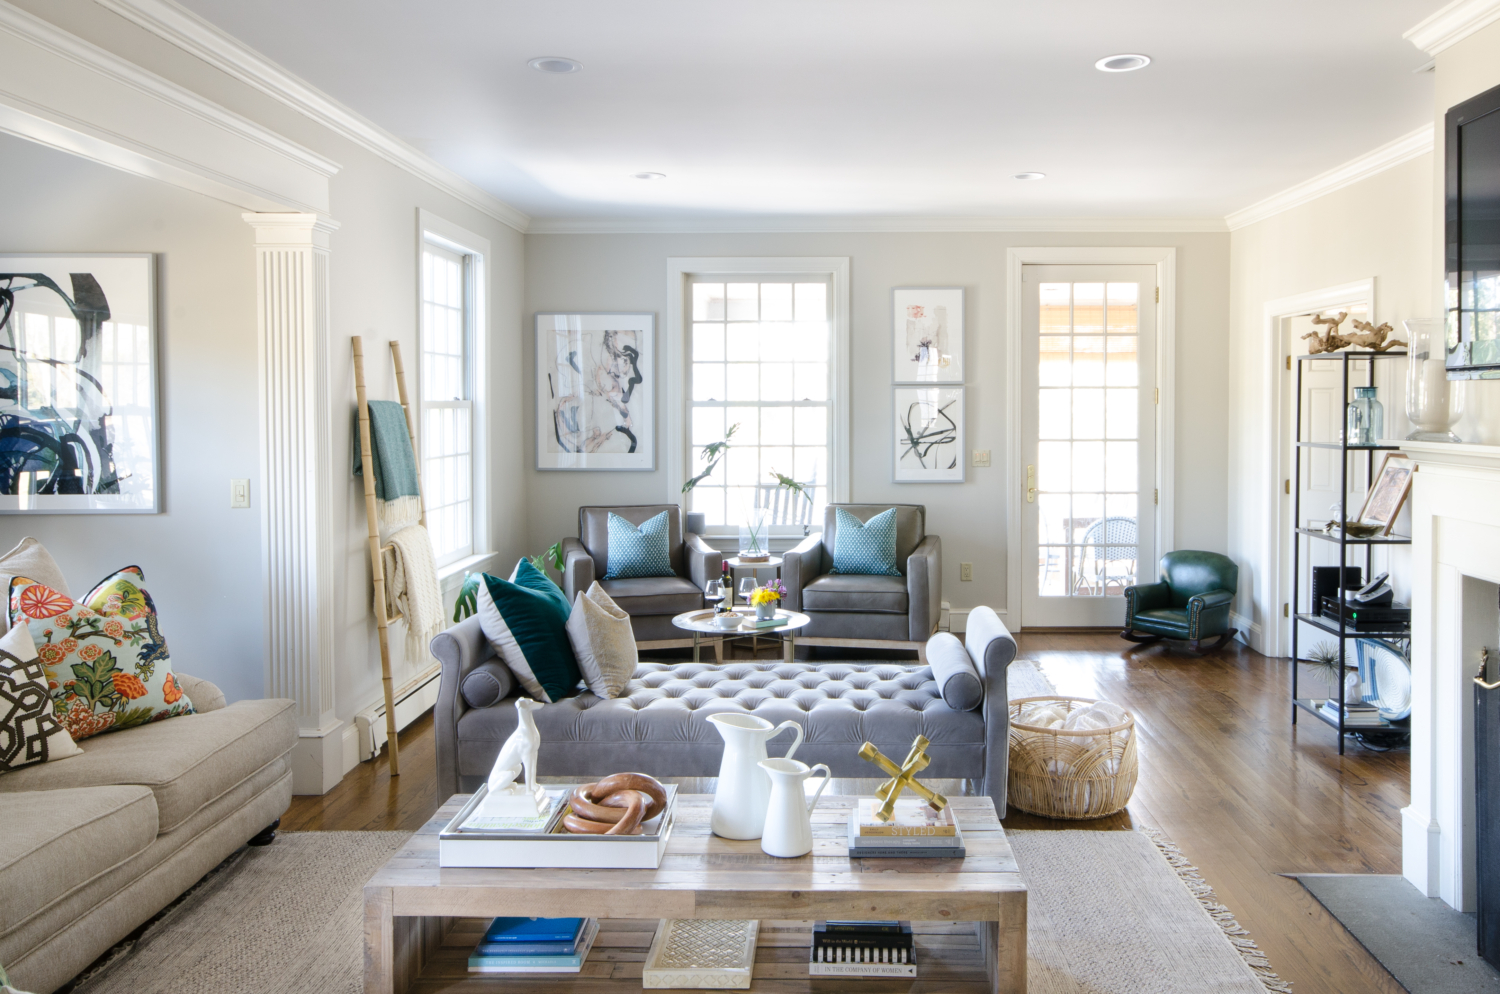 A Stylish Family Room Thats Both Chic And Friendly Featuring Neutral Furniture Thoughtful